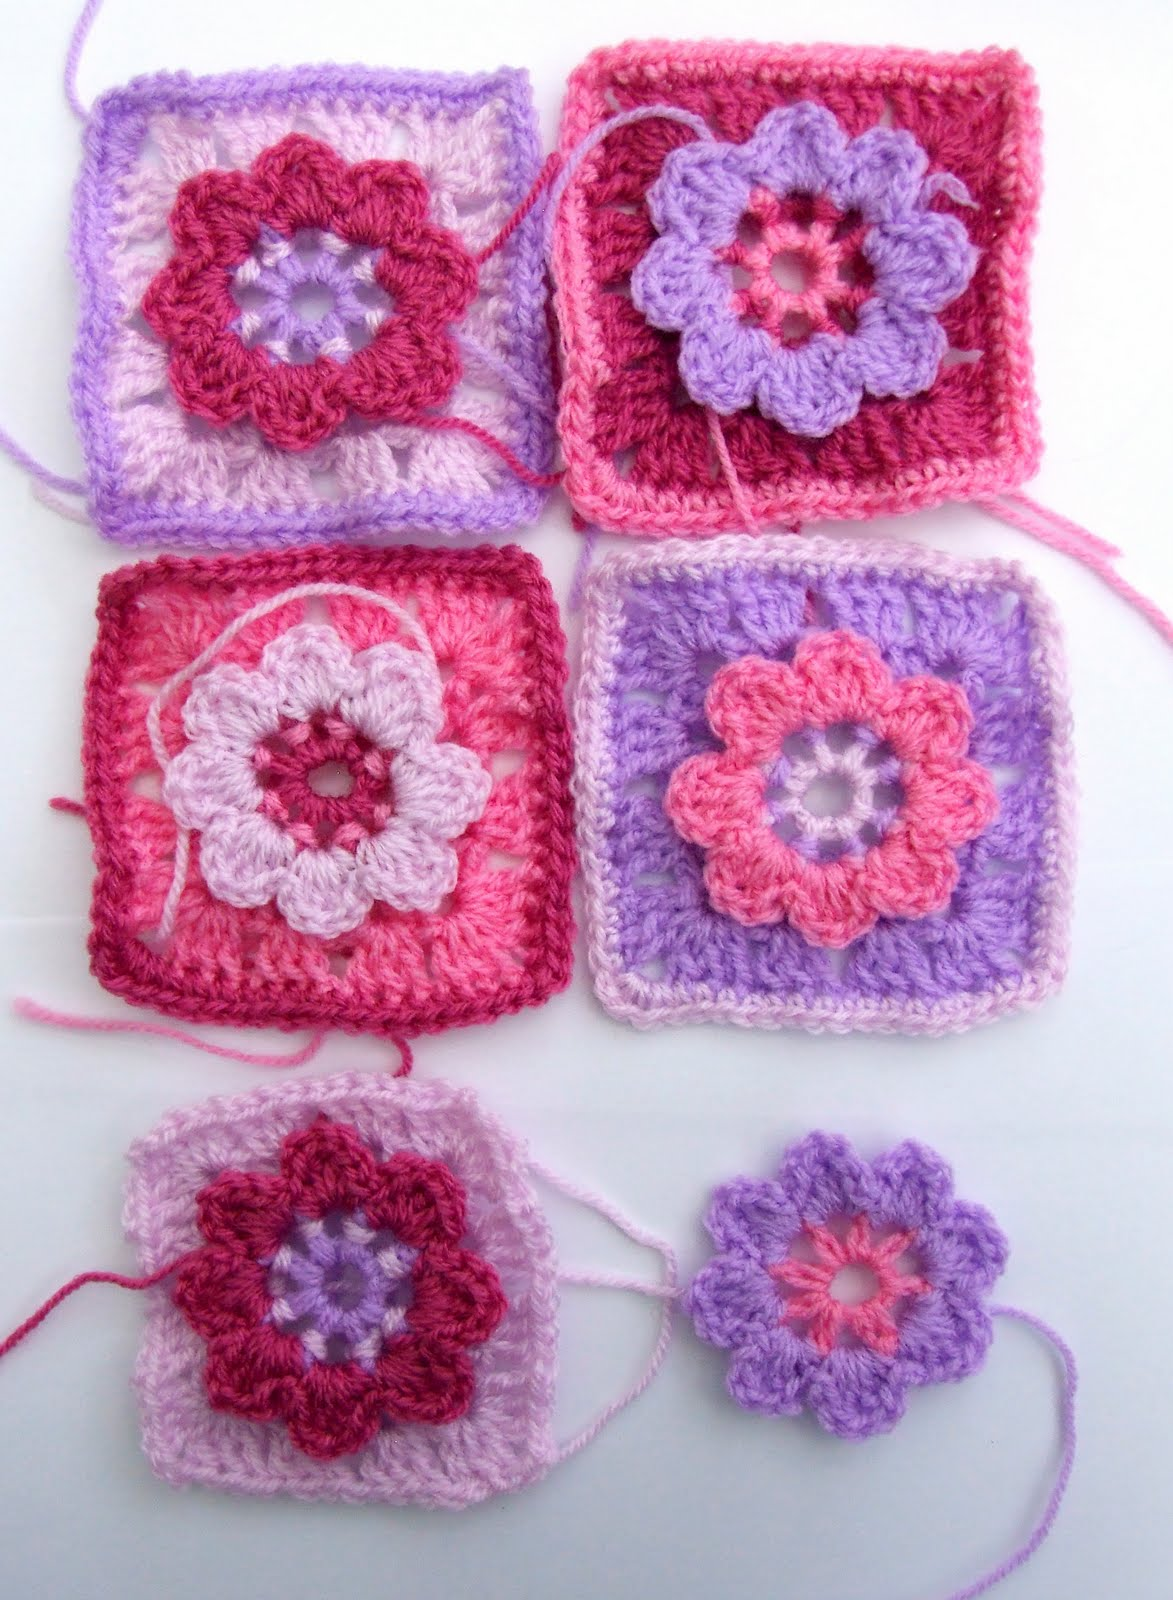 Crocheting Grandma : Granny Squares-Motifs-Applique - Free Patterns: Half-Granny Square